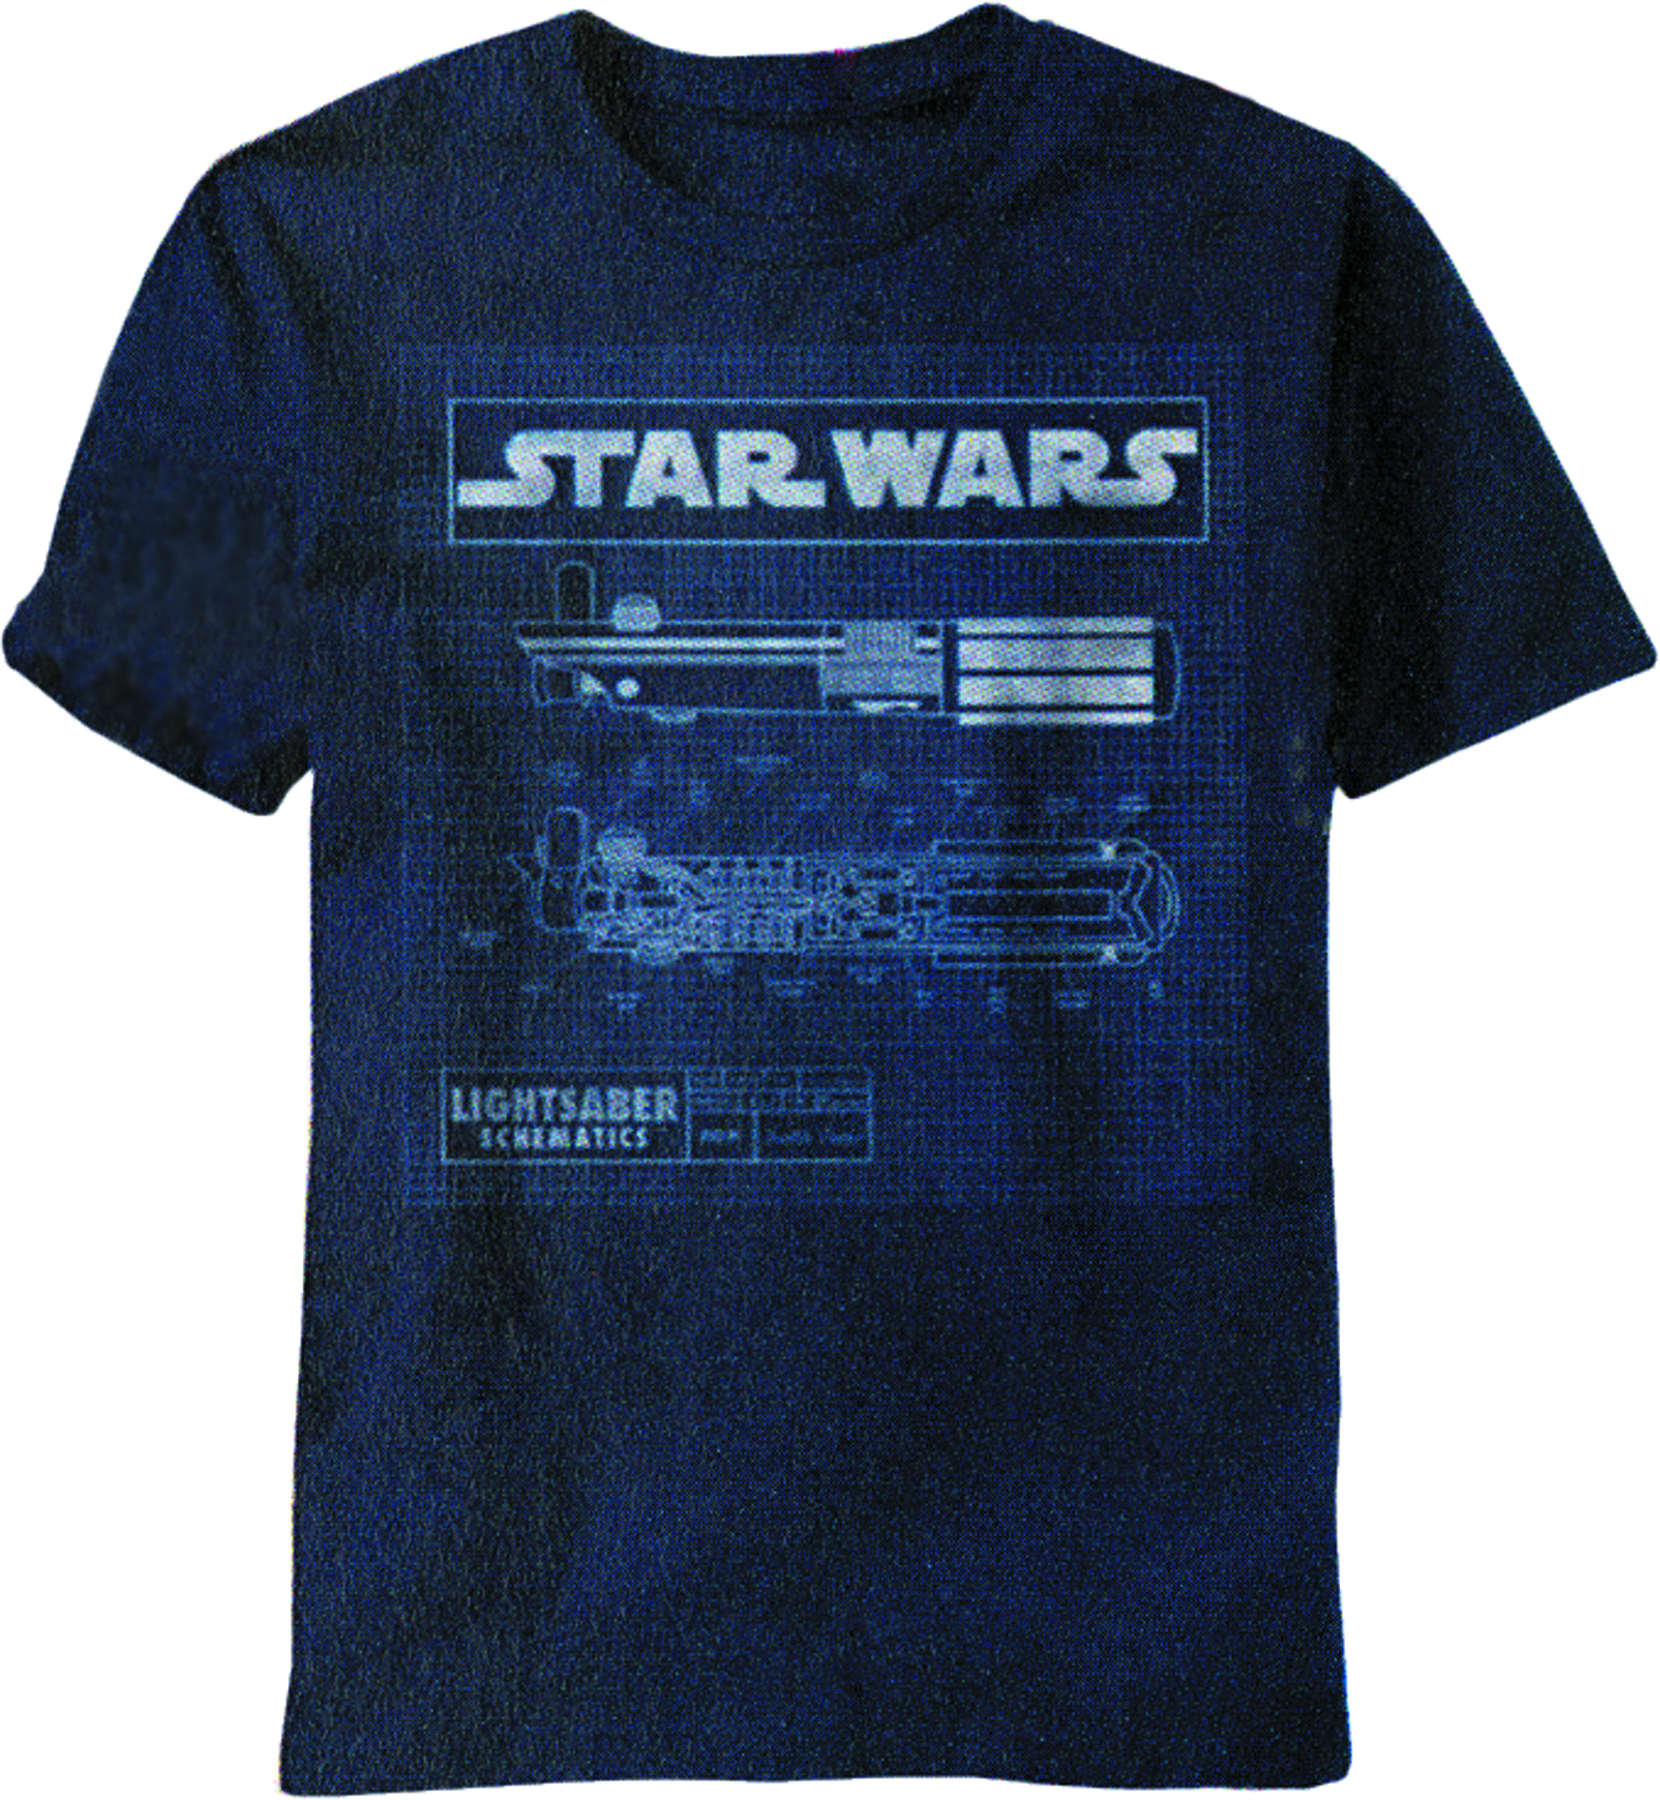 STAR WARS SABER DIAGRAM NAVY T/S XL